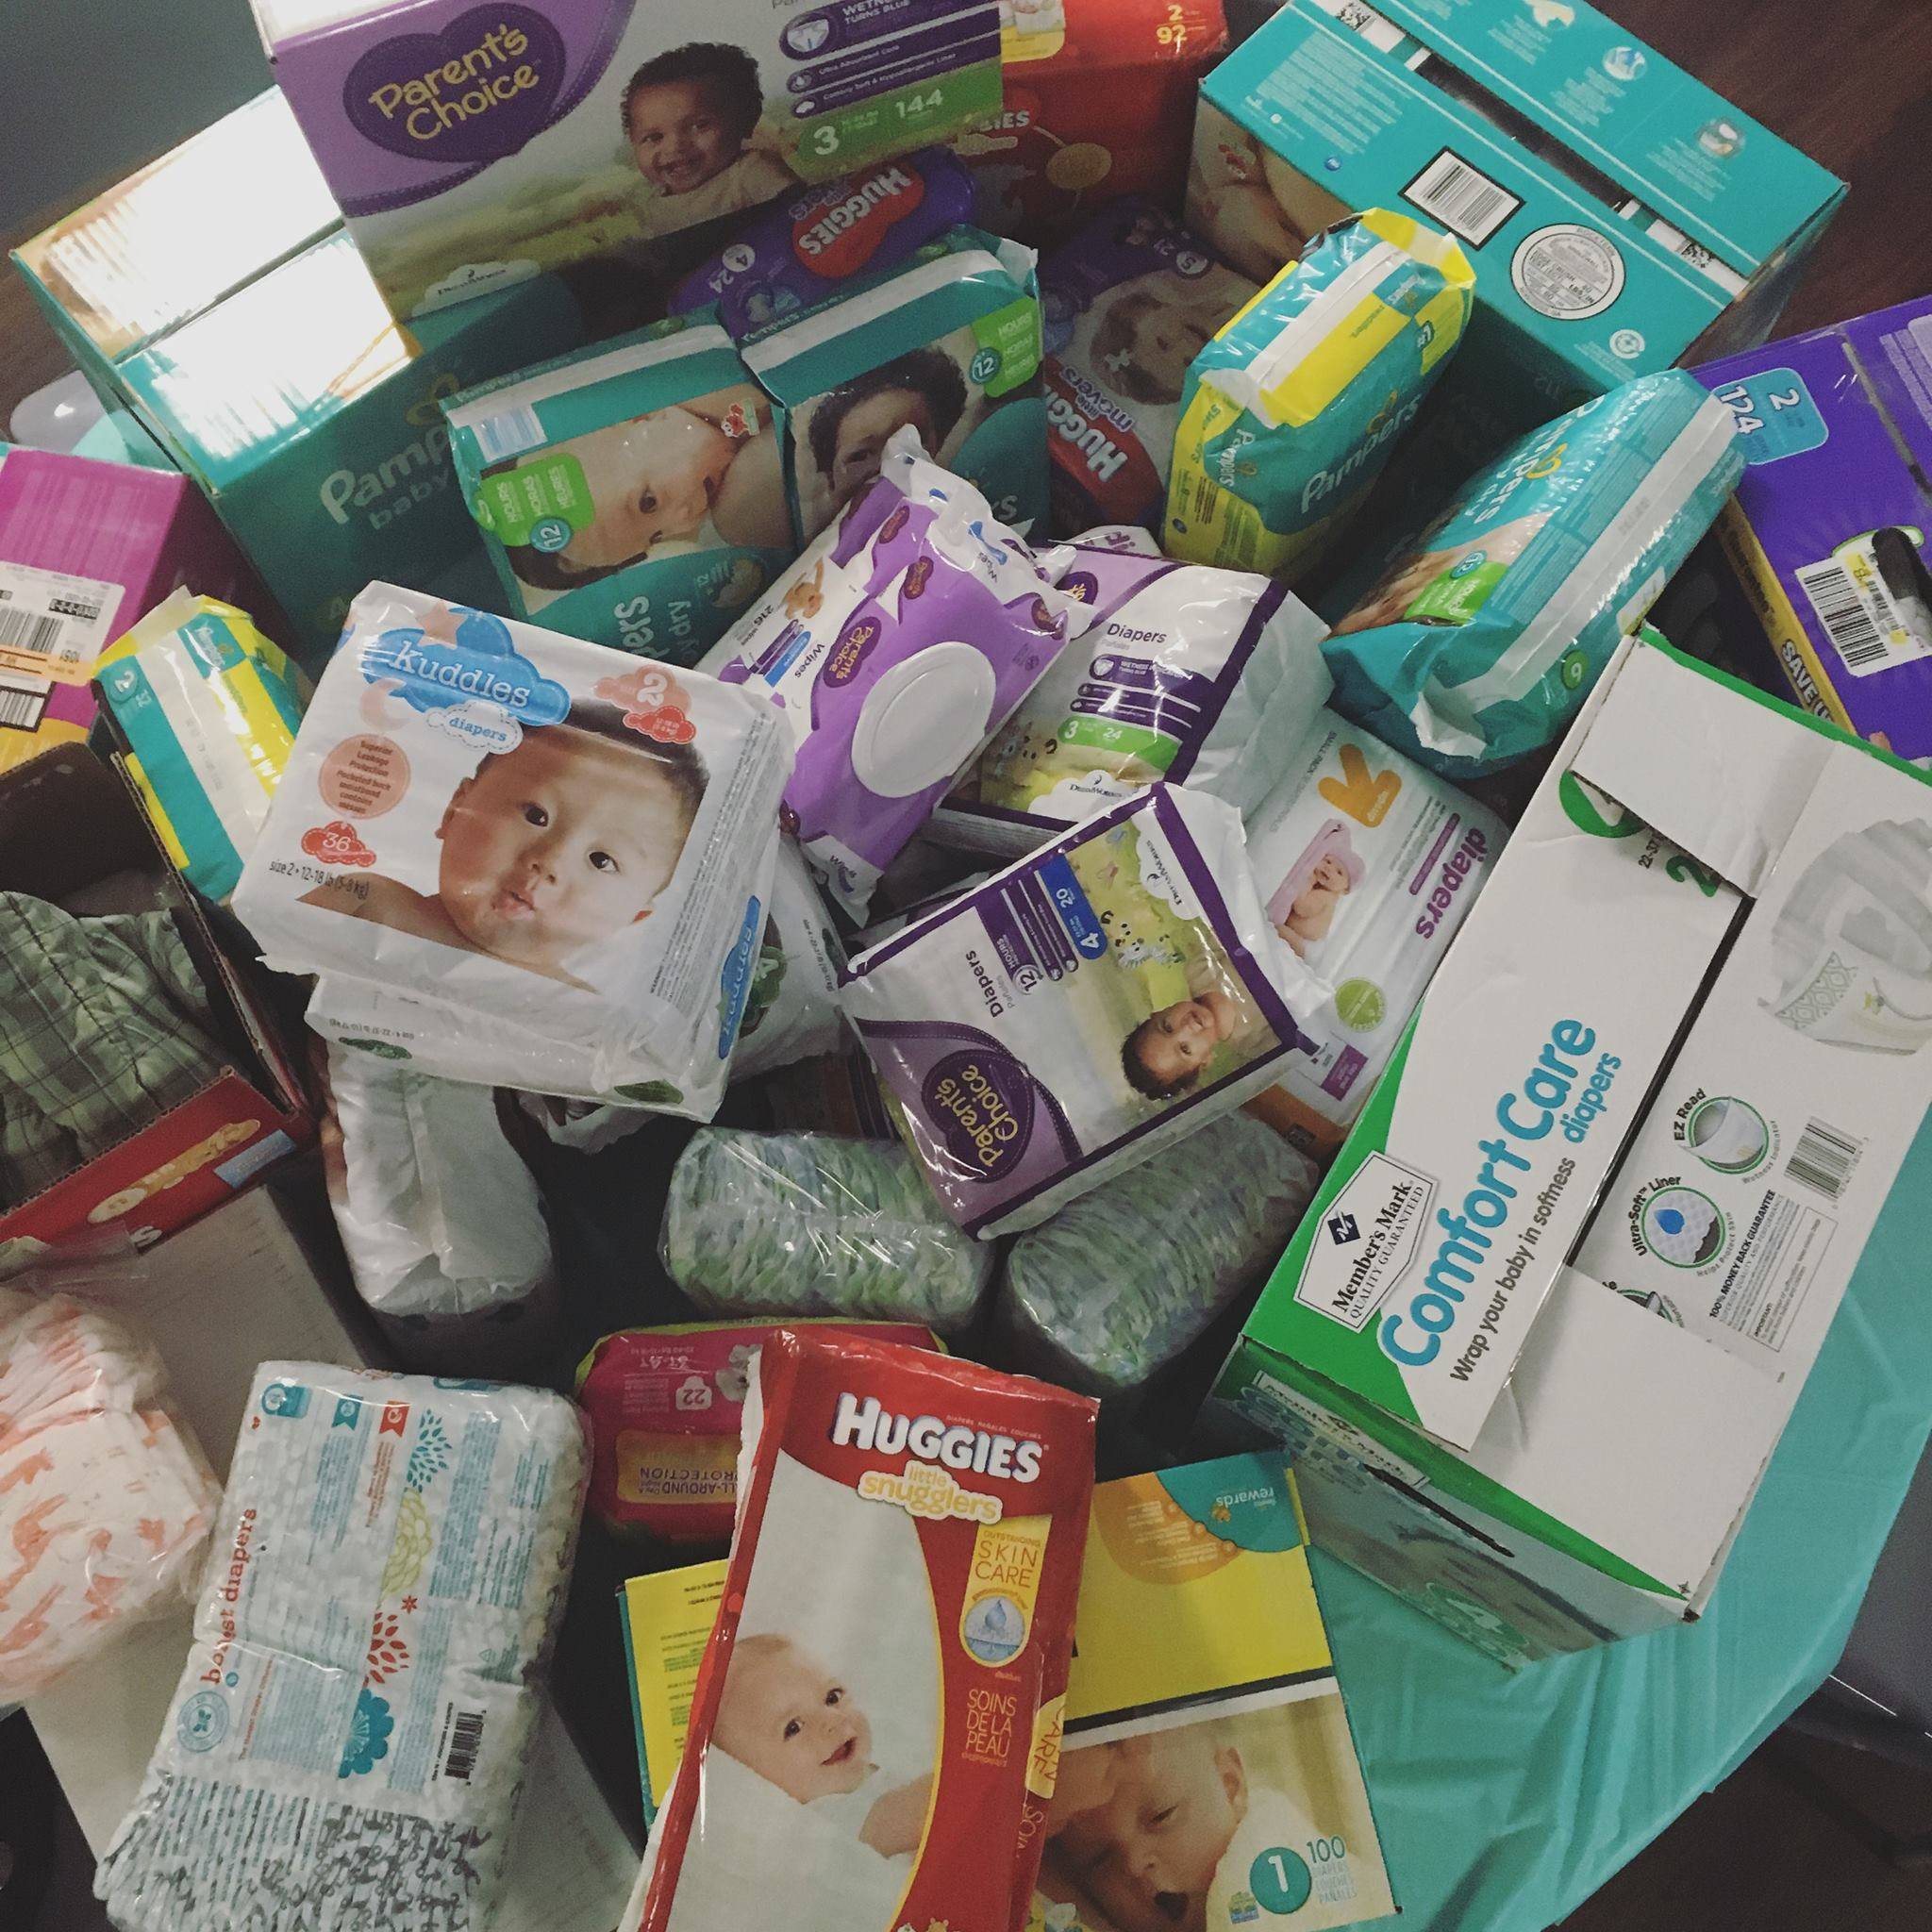 Diapers 2 Refugees: SO MUCH GOOD